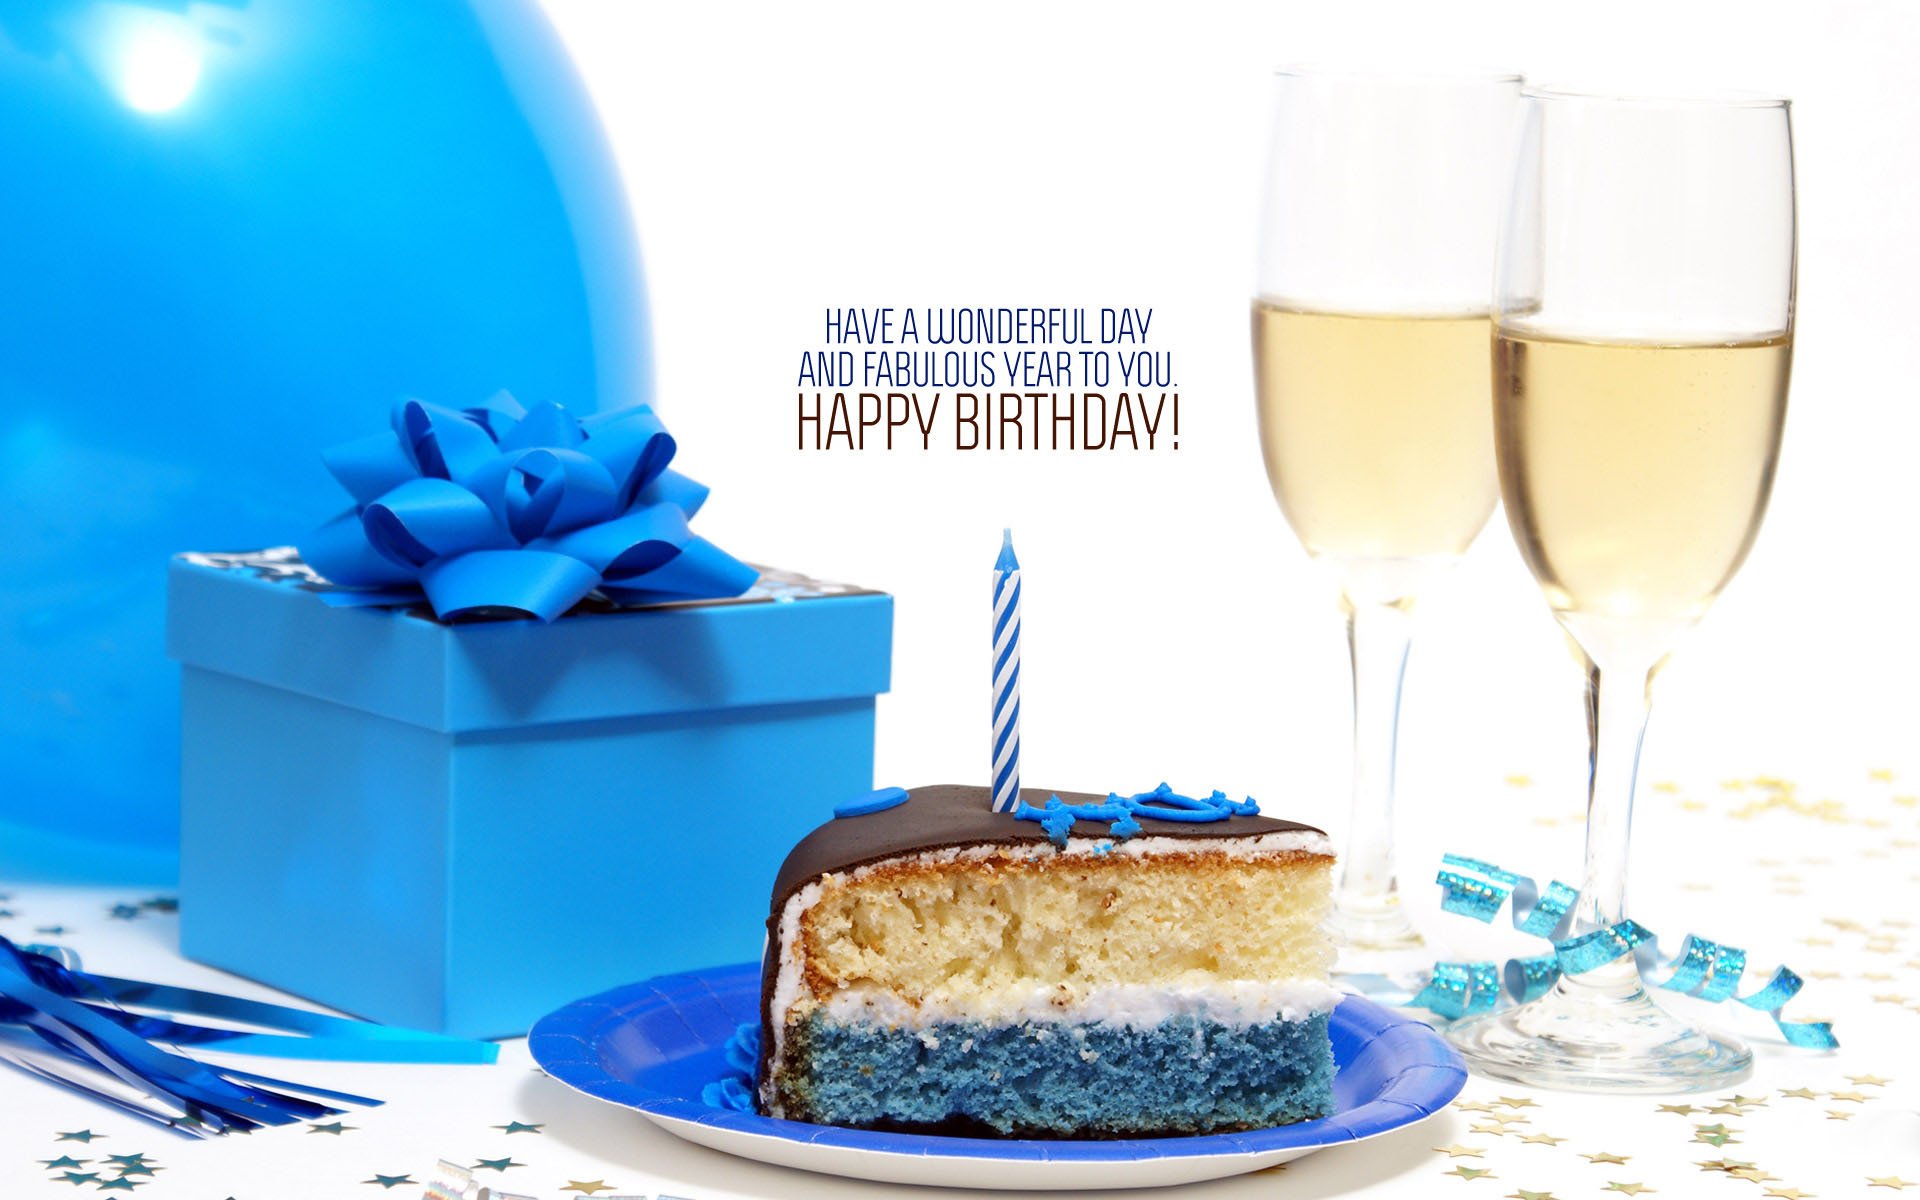 birthday wishes background wallpaper ; e4cc2a41348f949dbe7006104c4d3ab2